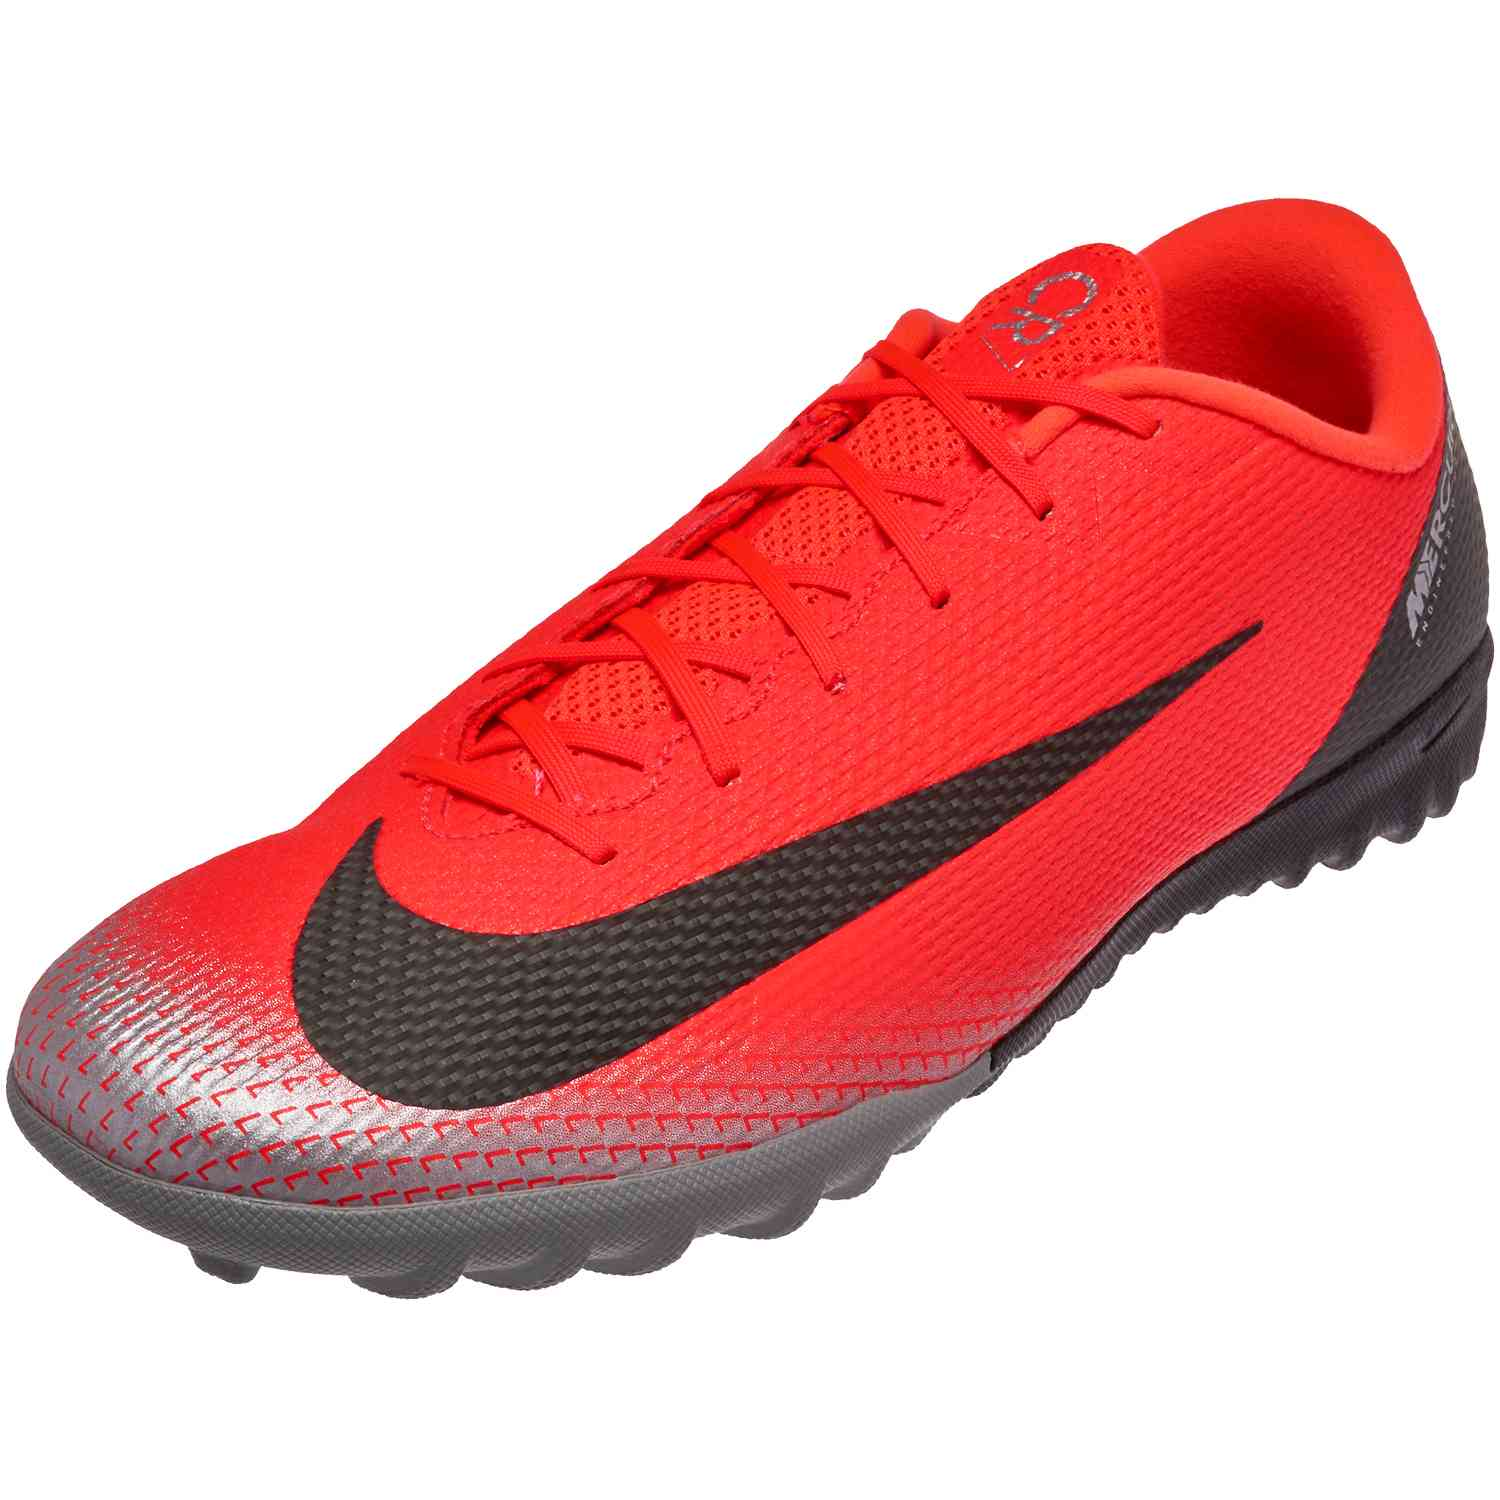 timeless design c30c4 8e2ac Nike Mercurial VaporX 12 Academy TF – CR7 – Bright Crimson Black Chrome Dark  Grey